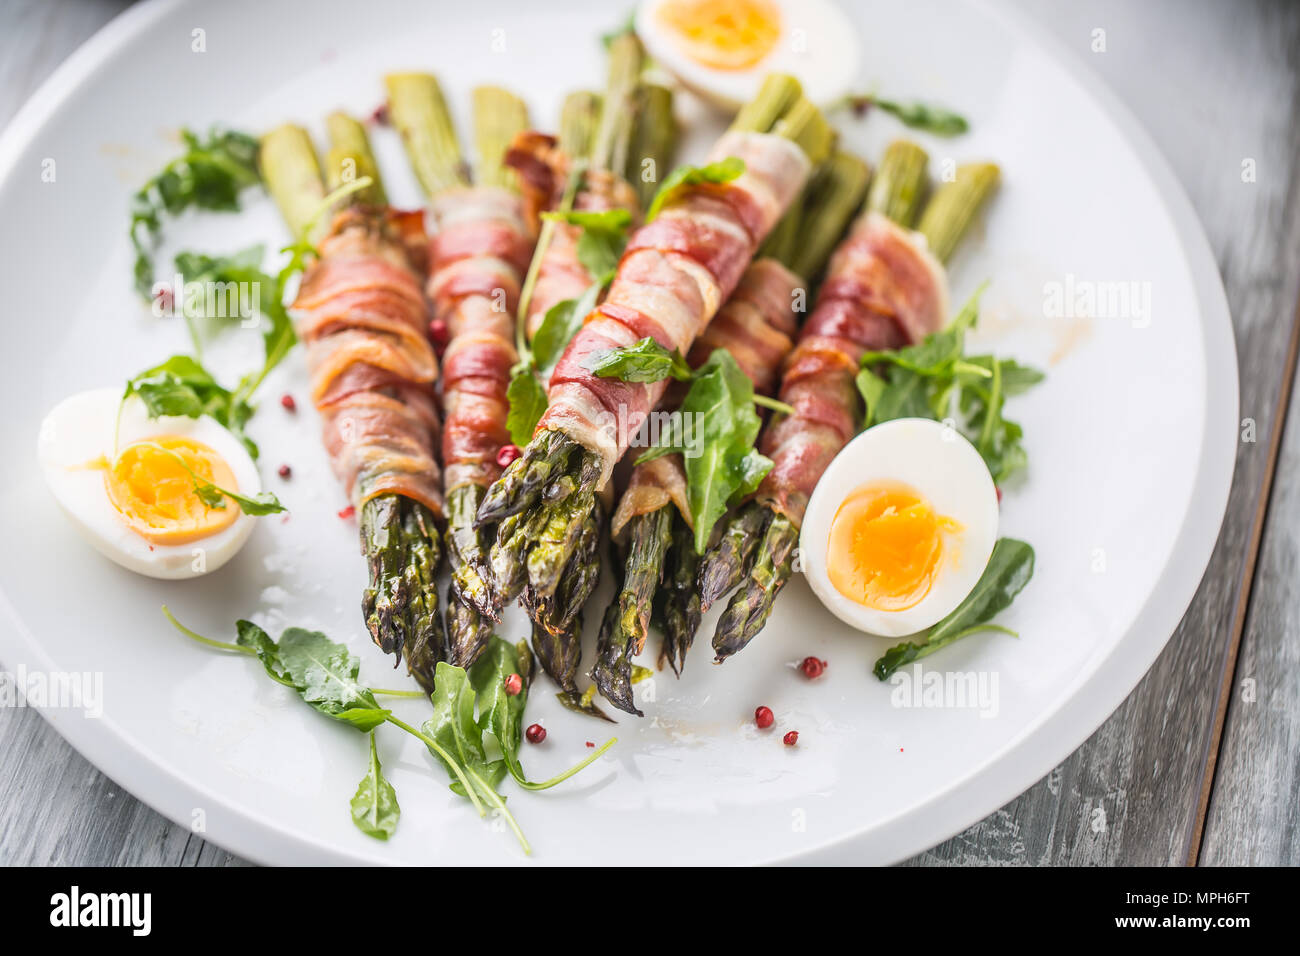 Fresh asparagus wrapped in bacon  on a white plate with arugula tomatoes and eggs. Stock Photo